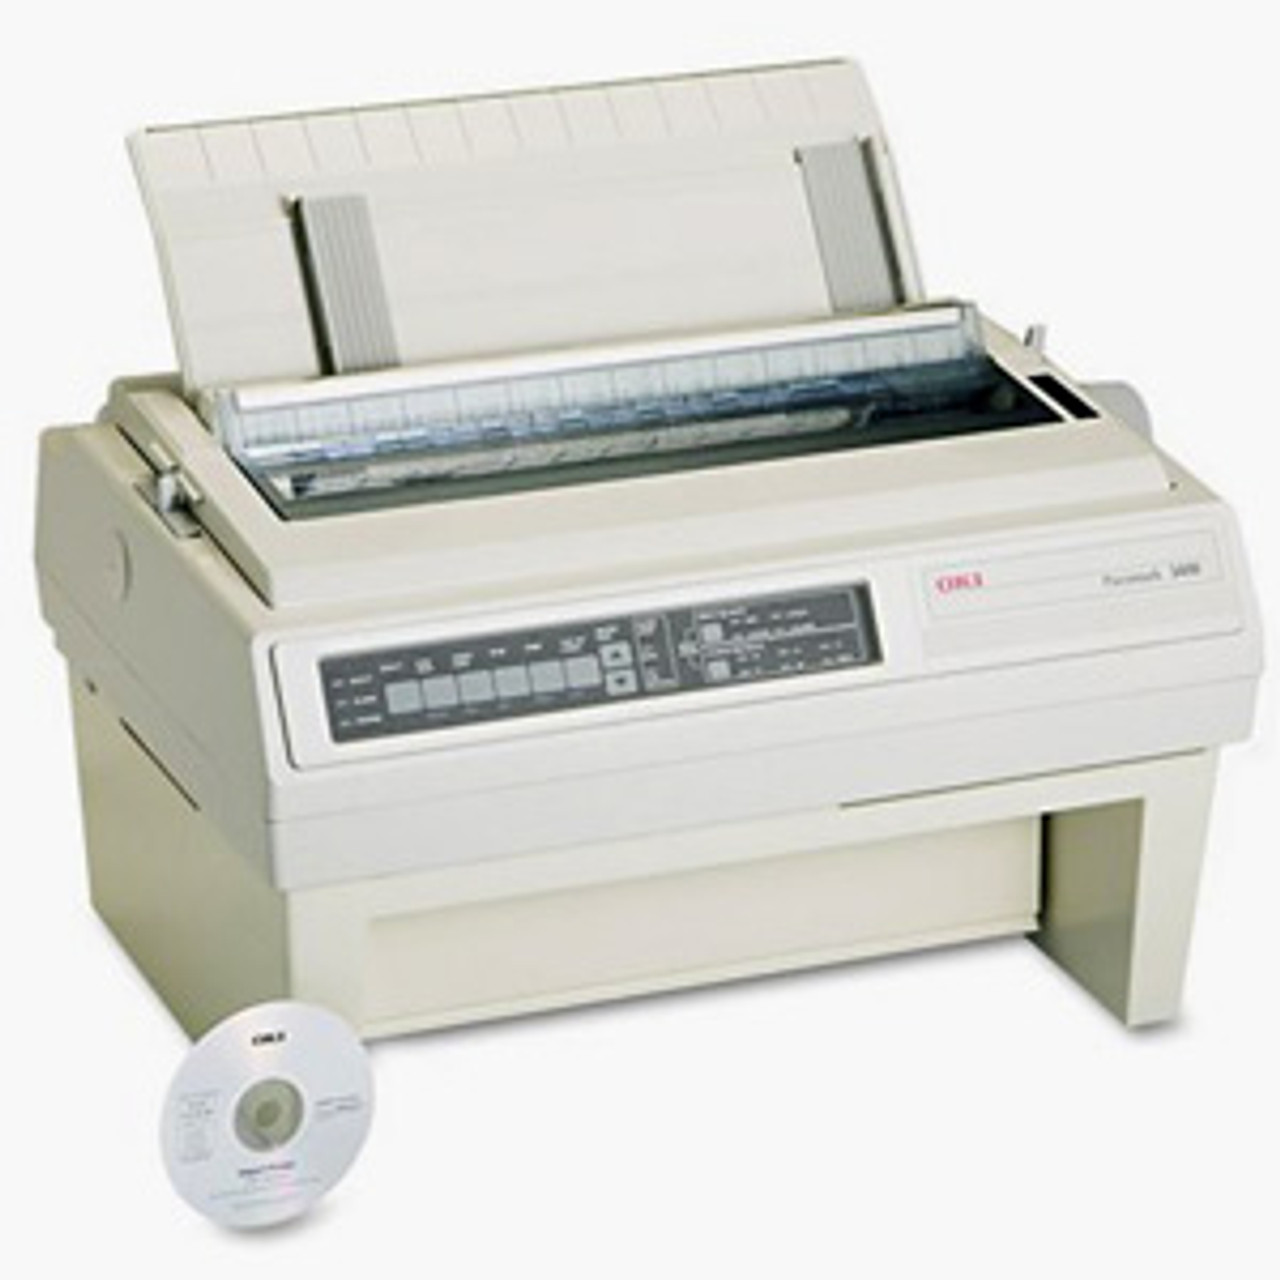 Okidata Pacemark 3410 Dot Matrix - 61800801 - Okidata Printer for sale